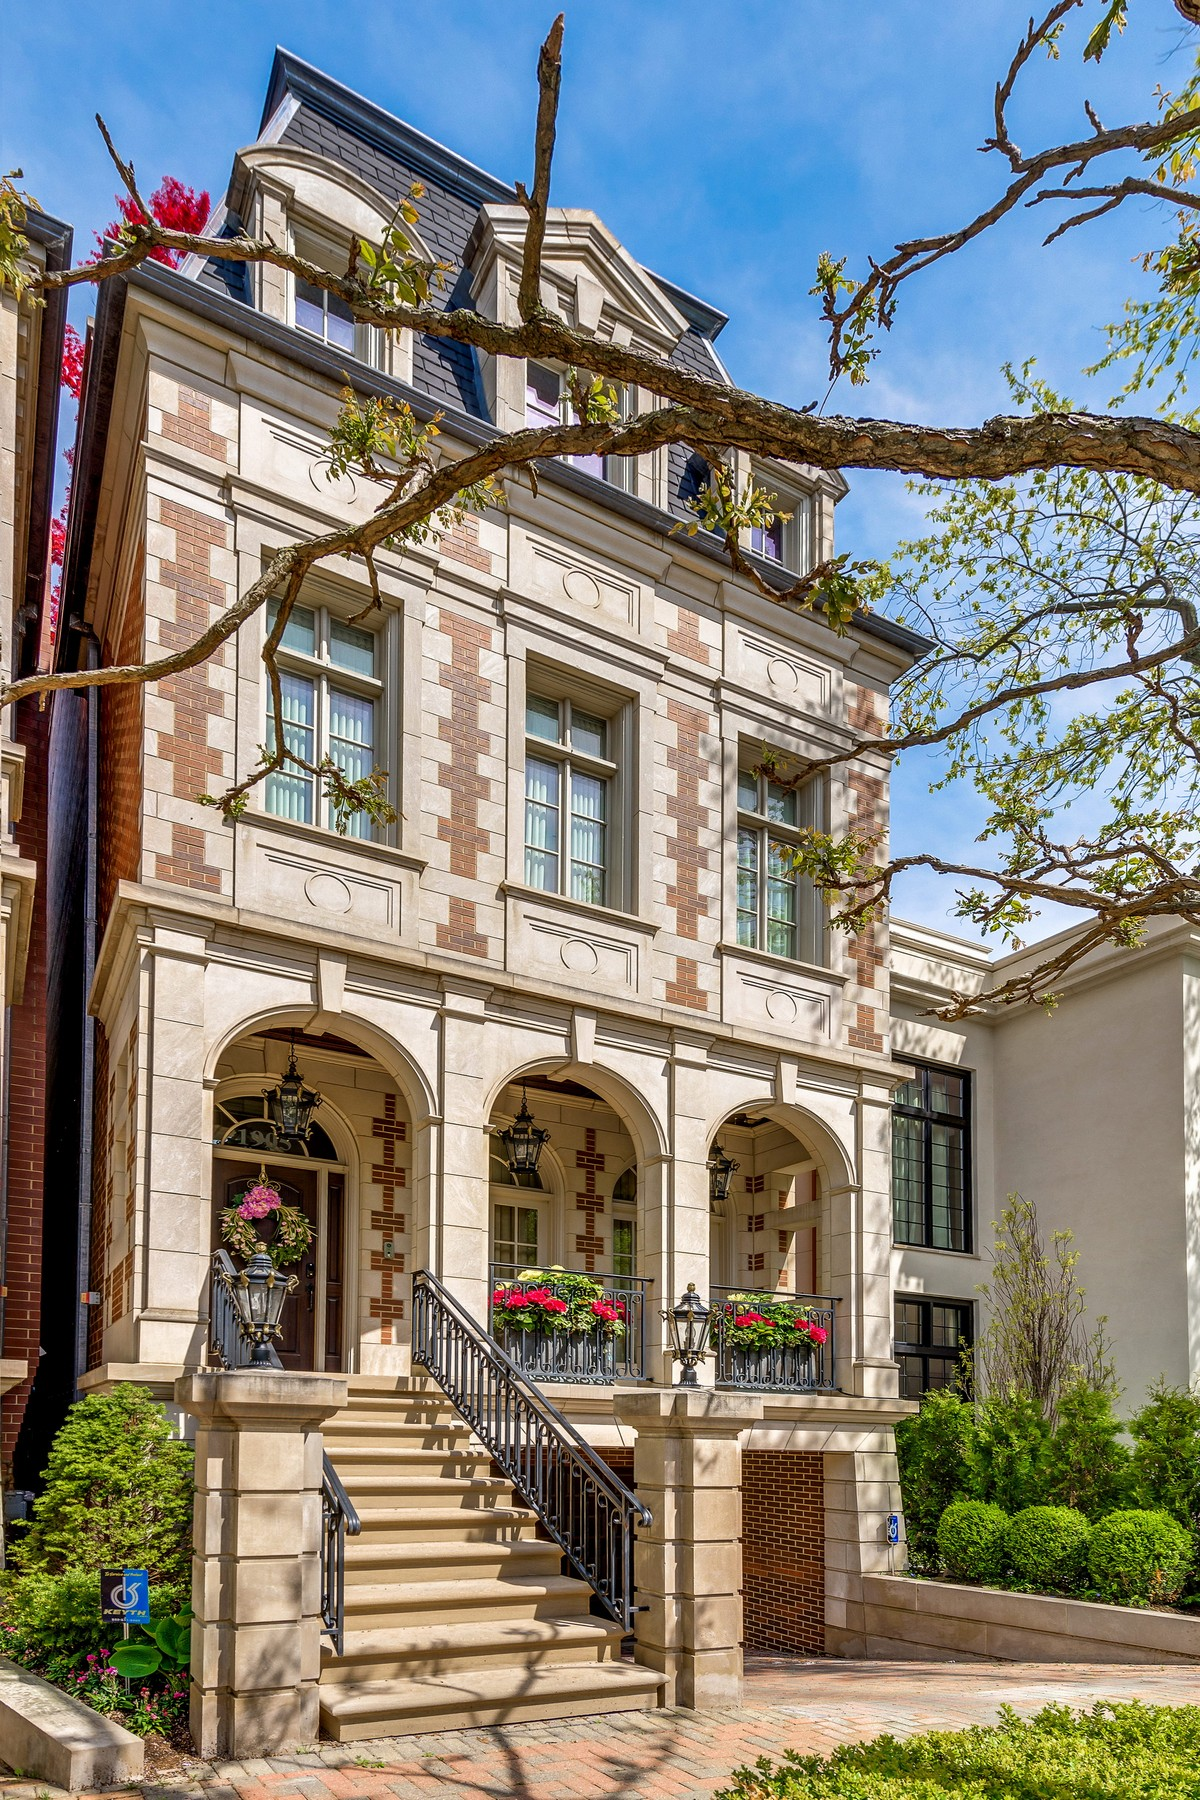 Intricately Renovated Classic Masterpiece 1905 N Burling Street Chicago, Illinois 60614 Estados Unidos